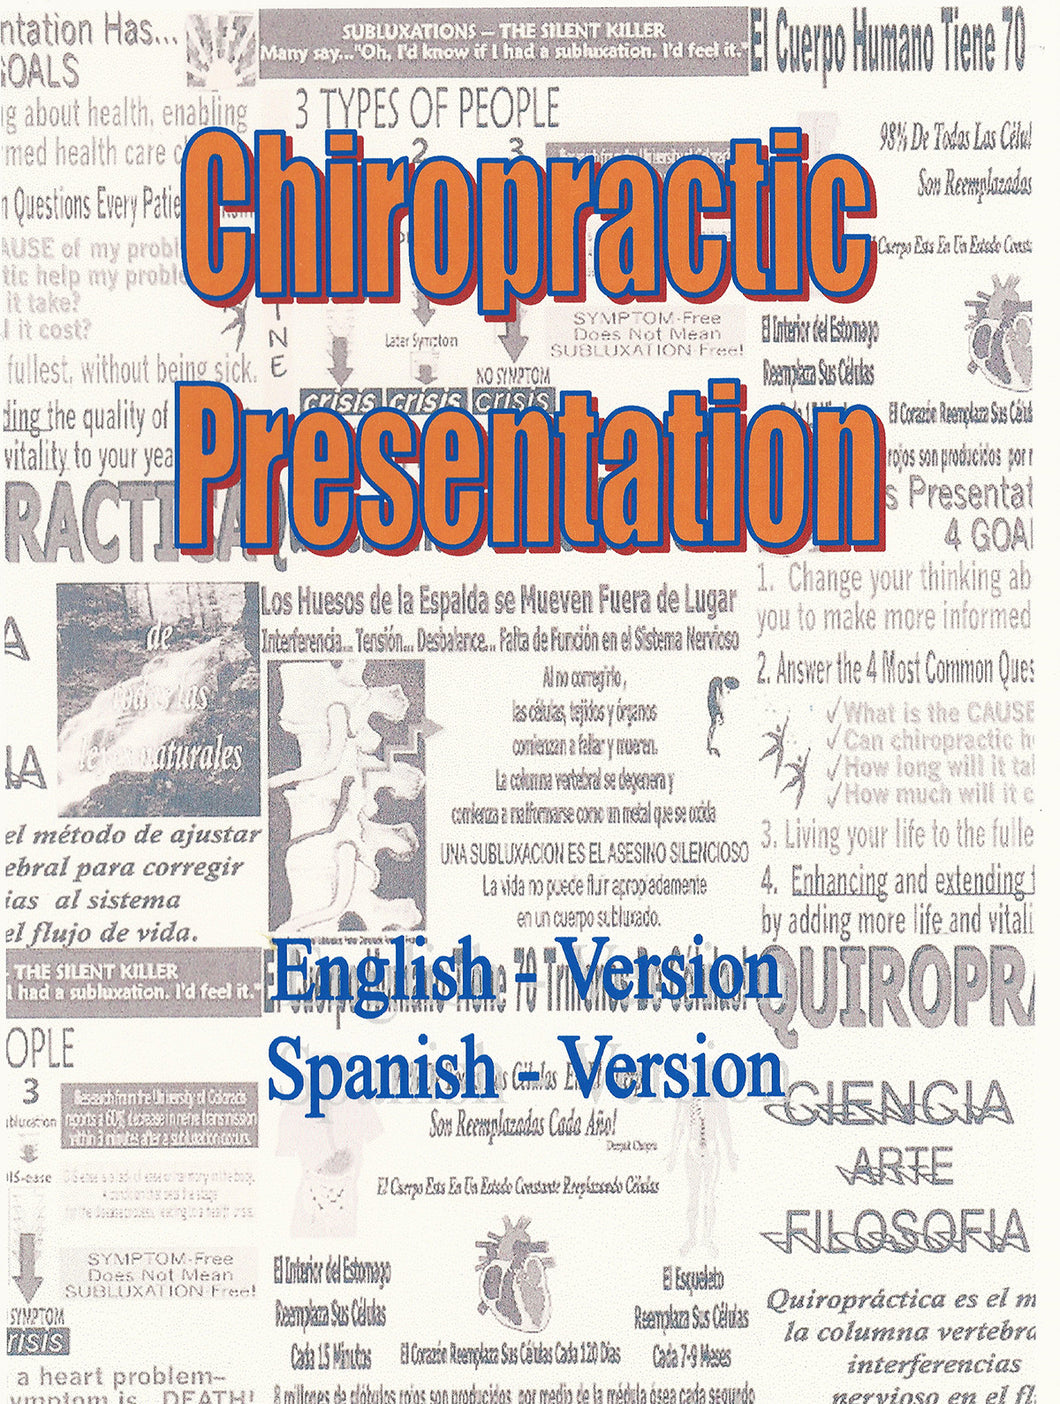 Chiropractic Presentation MP3